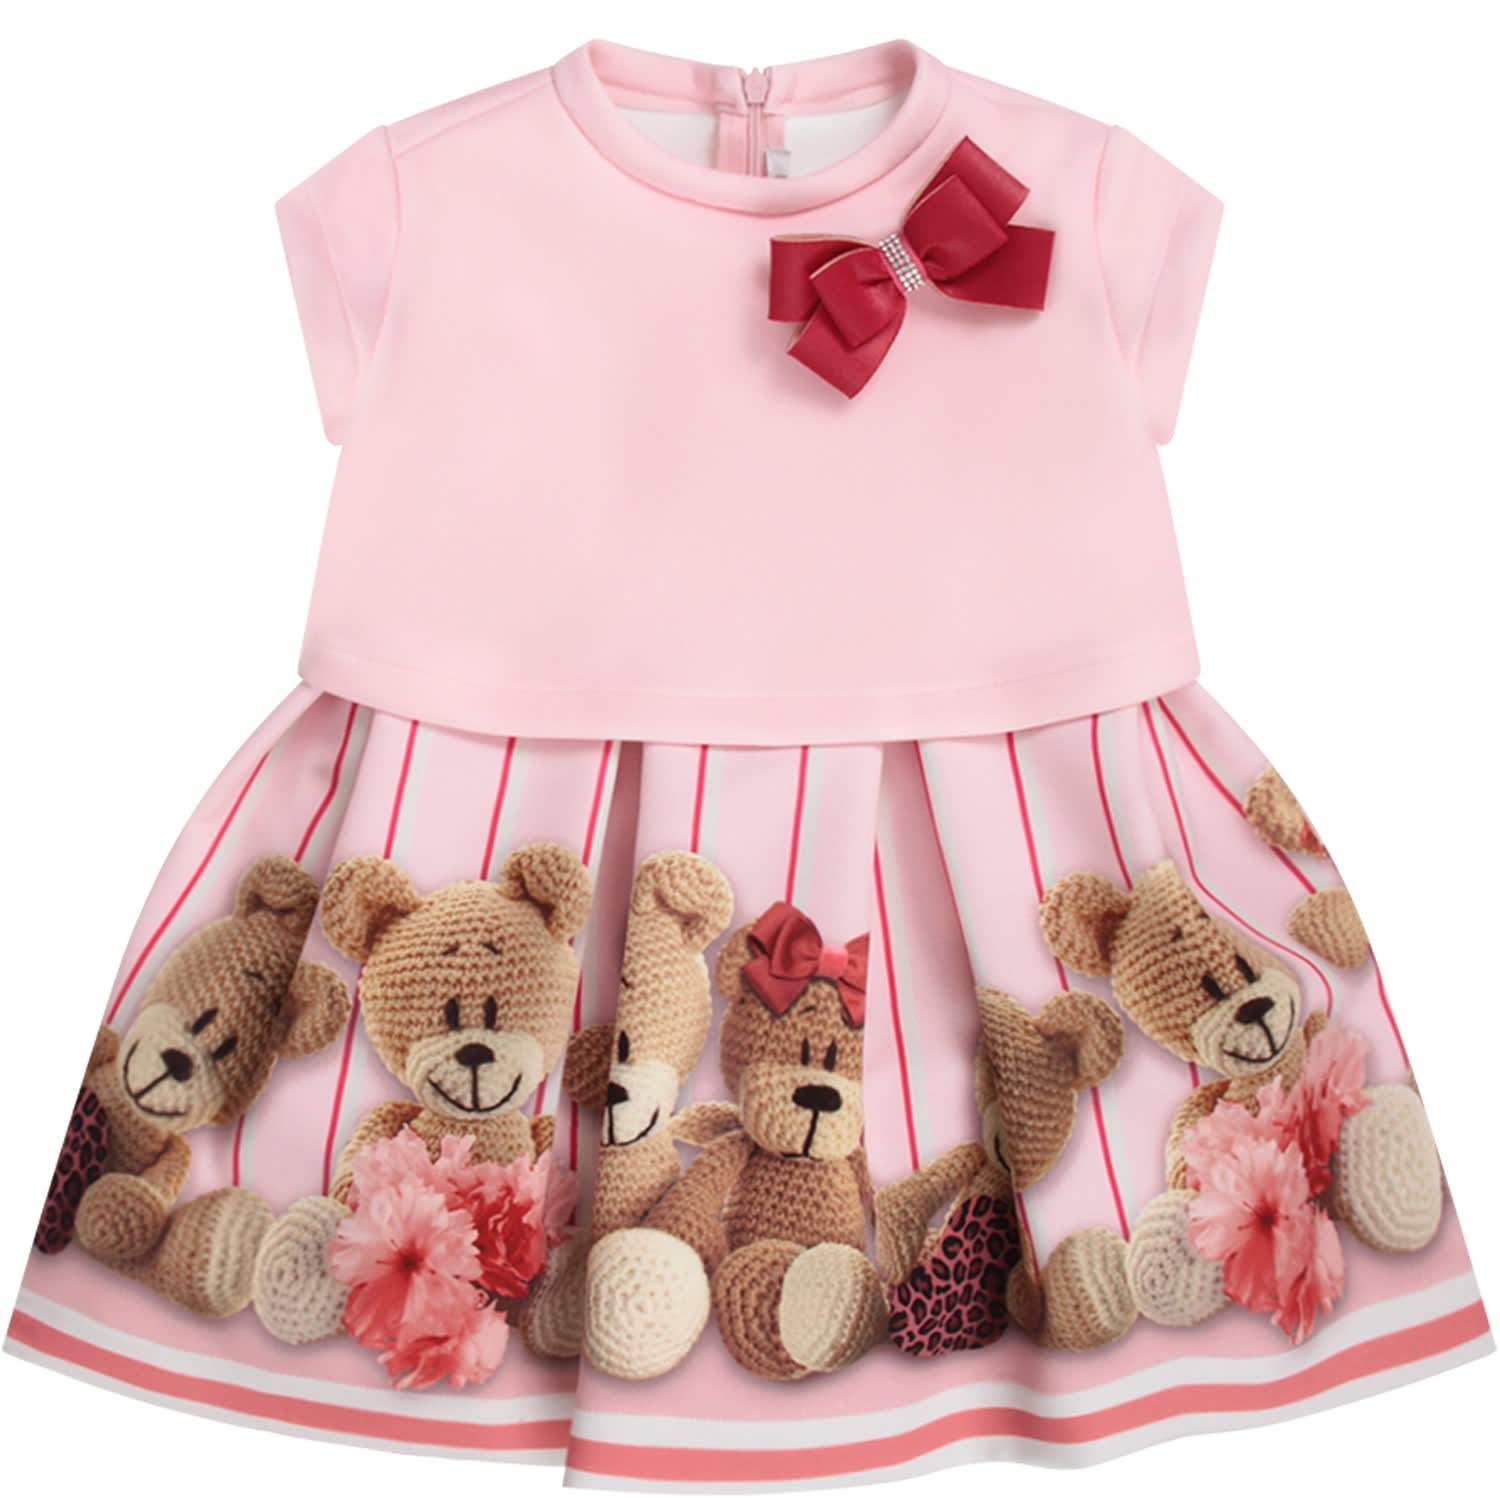 Loredana Pink Girl Dress With Colorful Bears